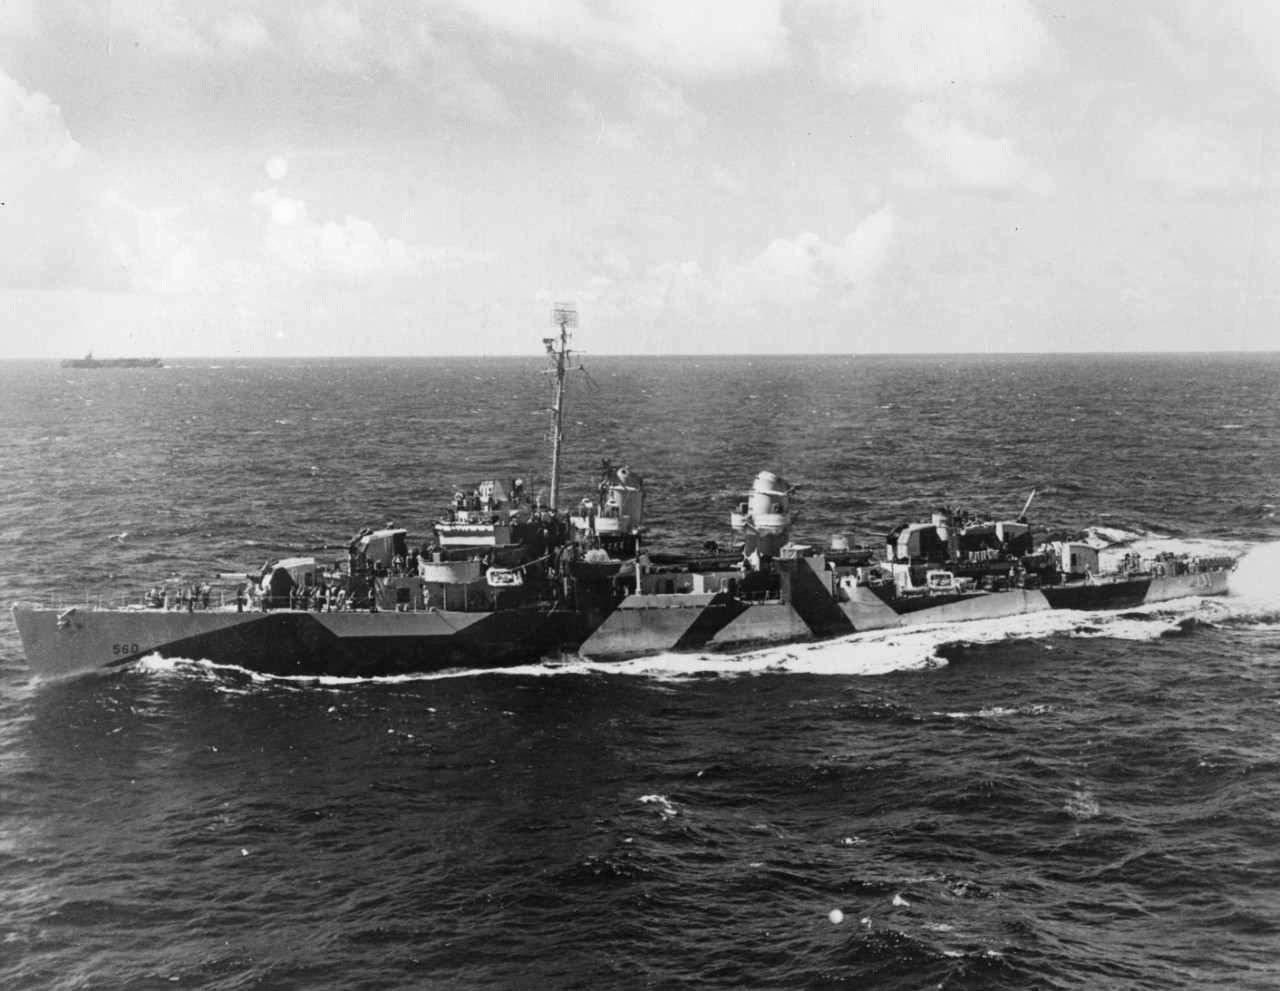 USS Morrison (DD-560) underway, in a photo taken from USS Gambier Bay (CVE-73). Another aircraft carrier can be seen in the distance.